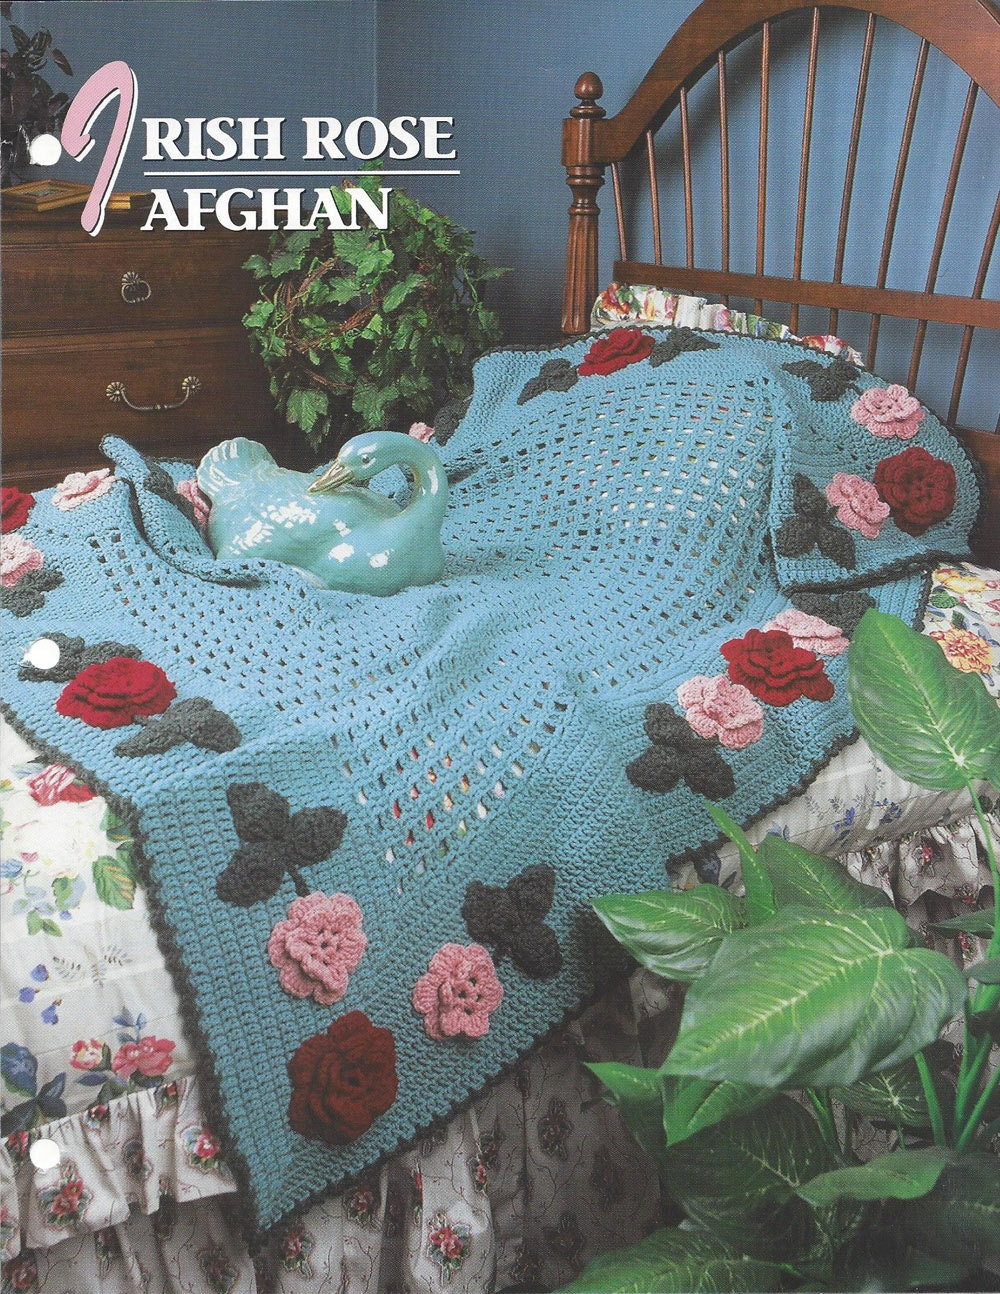 Crochet Afghan Patterns Quilt : Irish Rose Afghan Pattern Annies Crochet Quilt